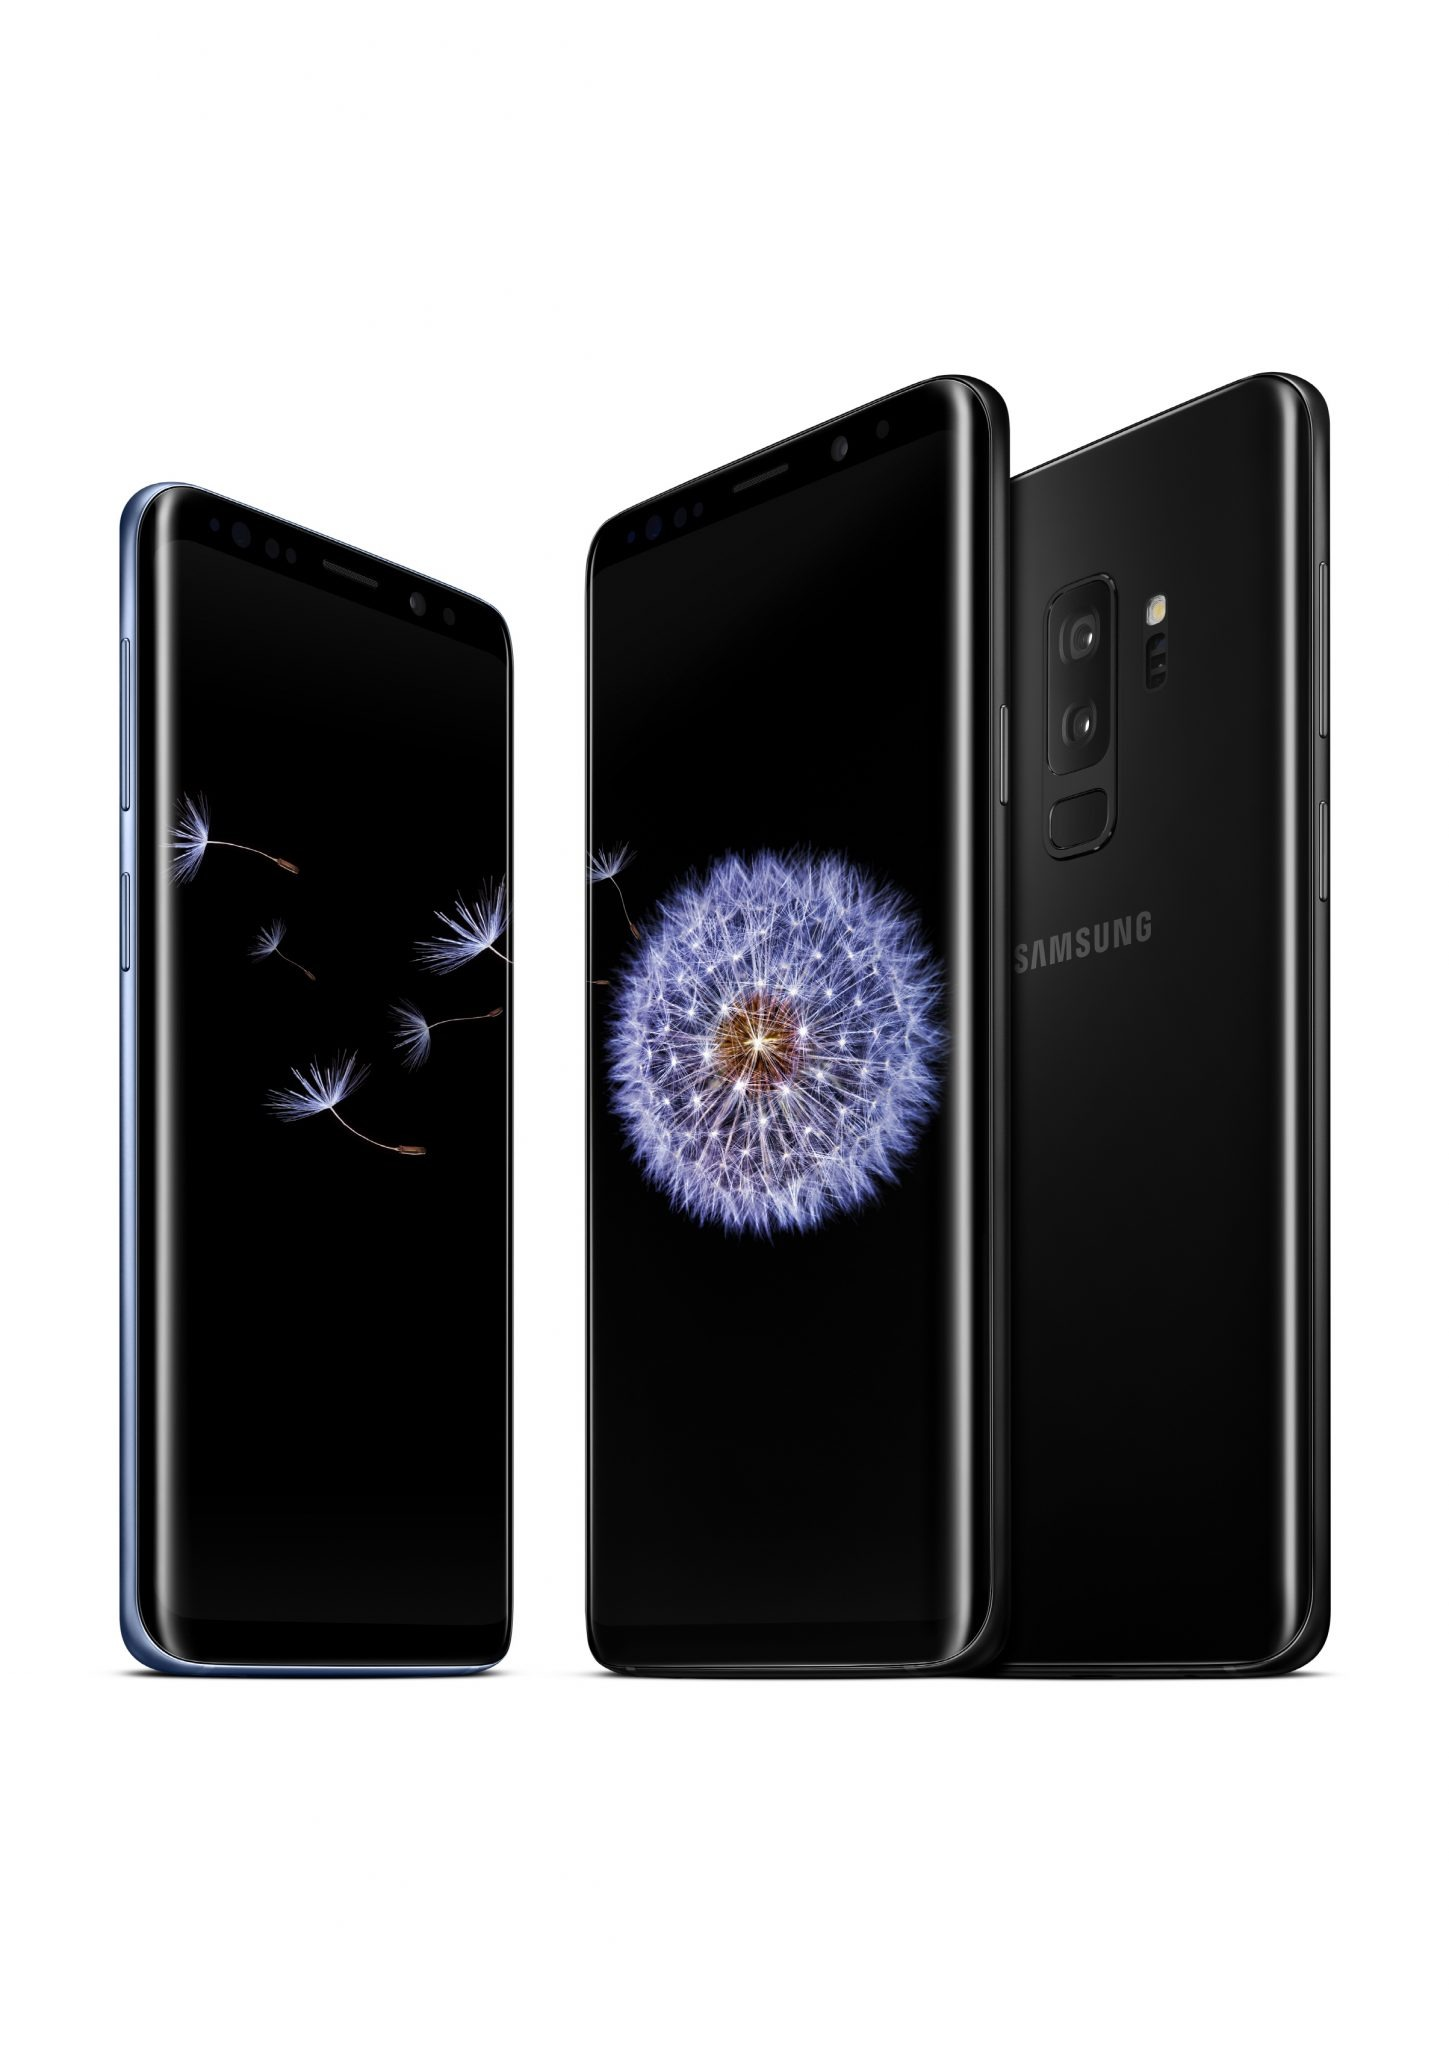 Samsung Galaxy S9 and Galaxy S9+ Pricing for India leaks out 1